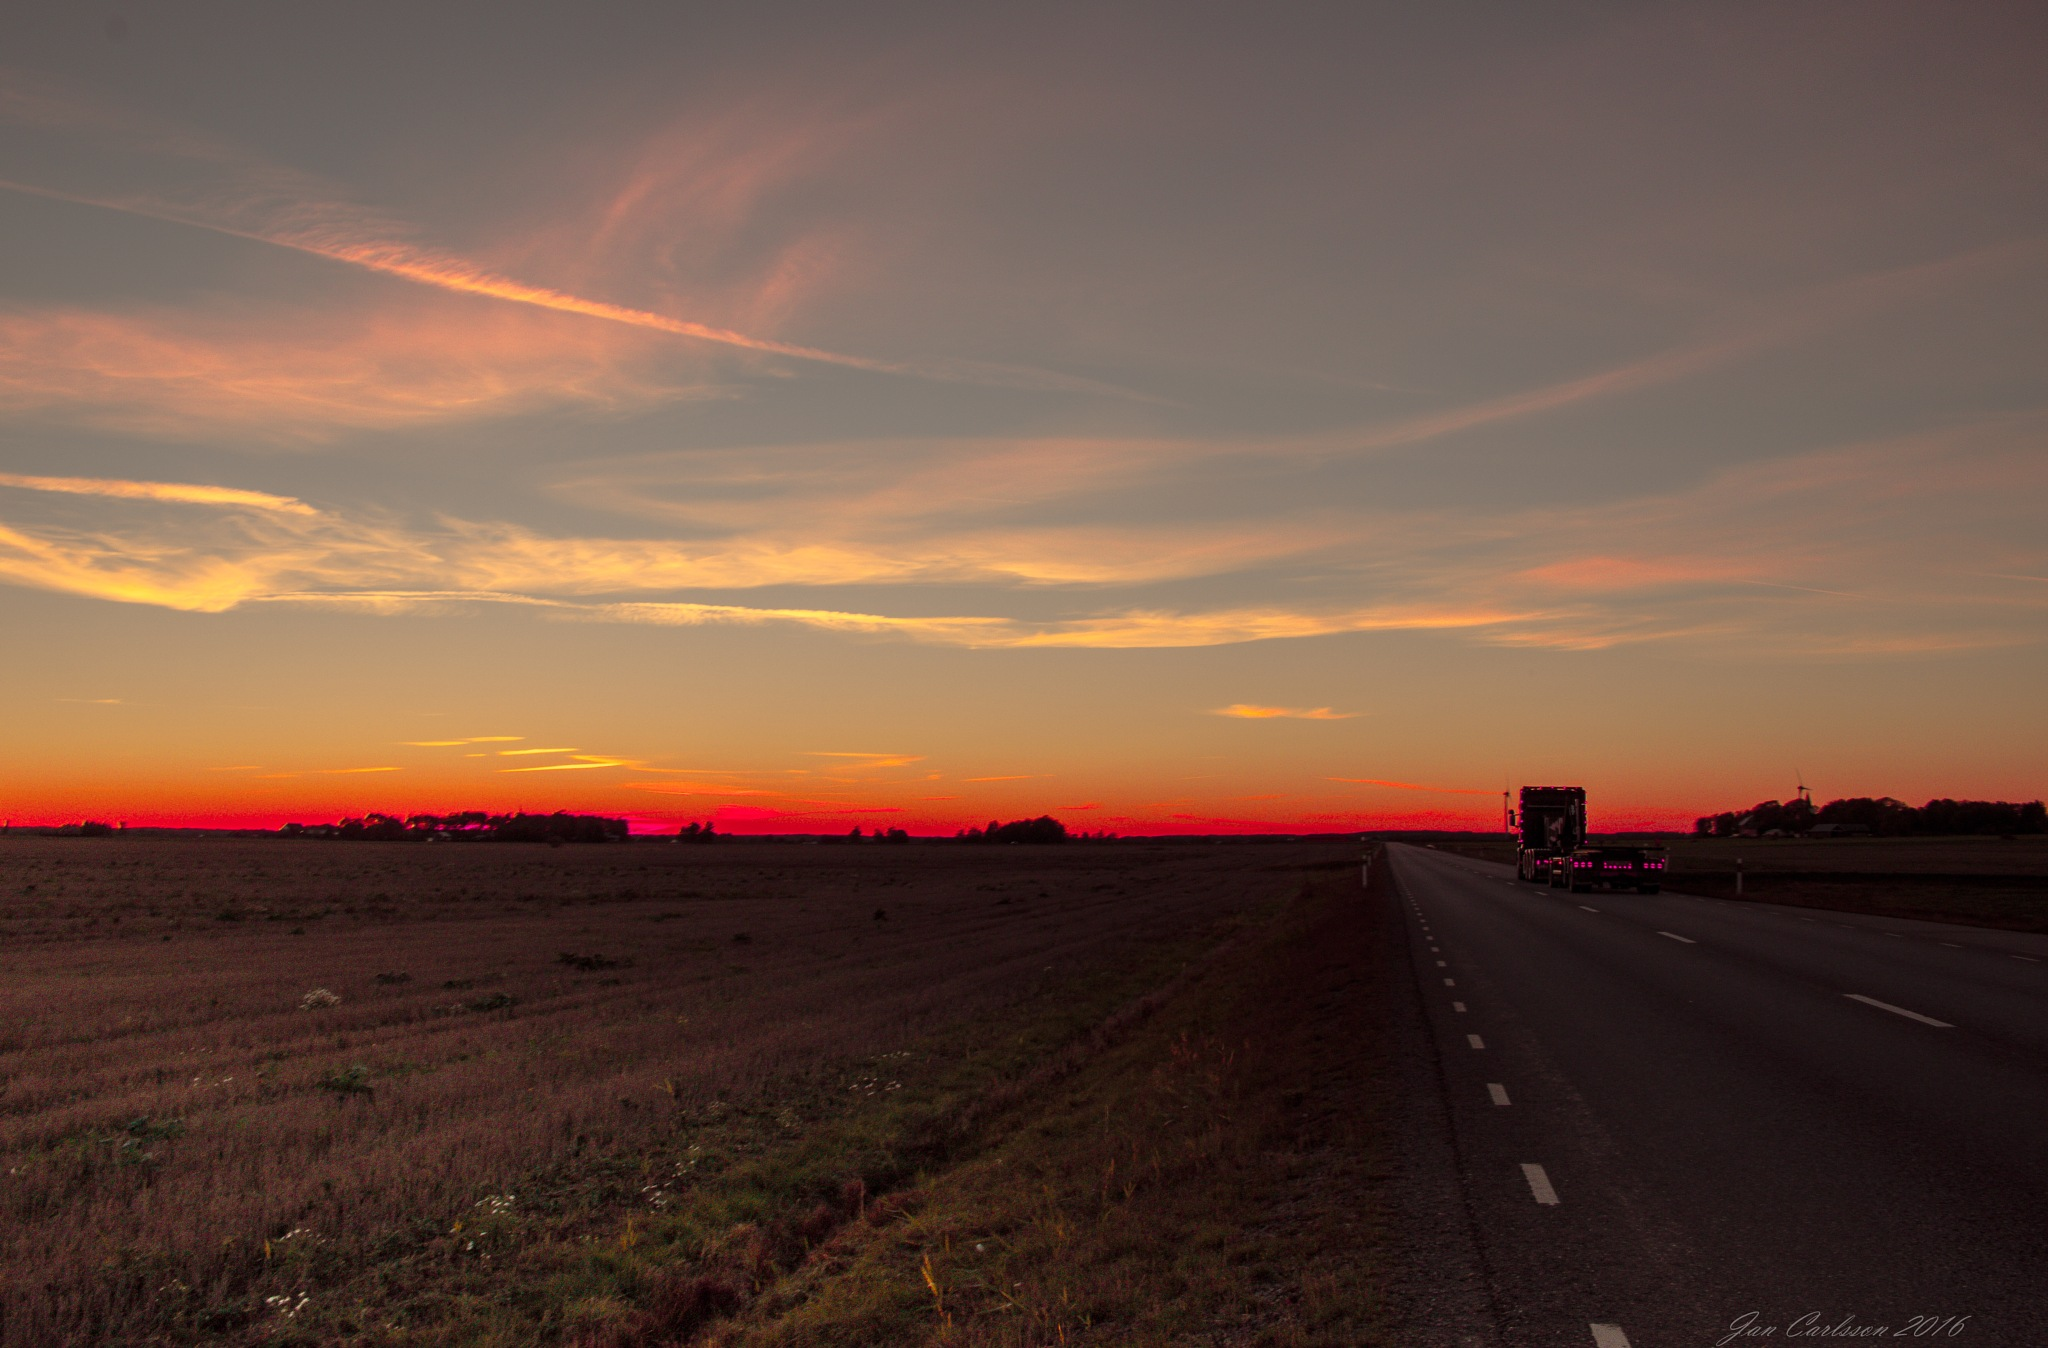 October Sunset in the Swedish West by carljan w carlsson